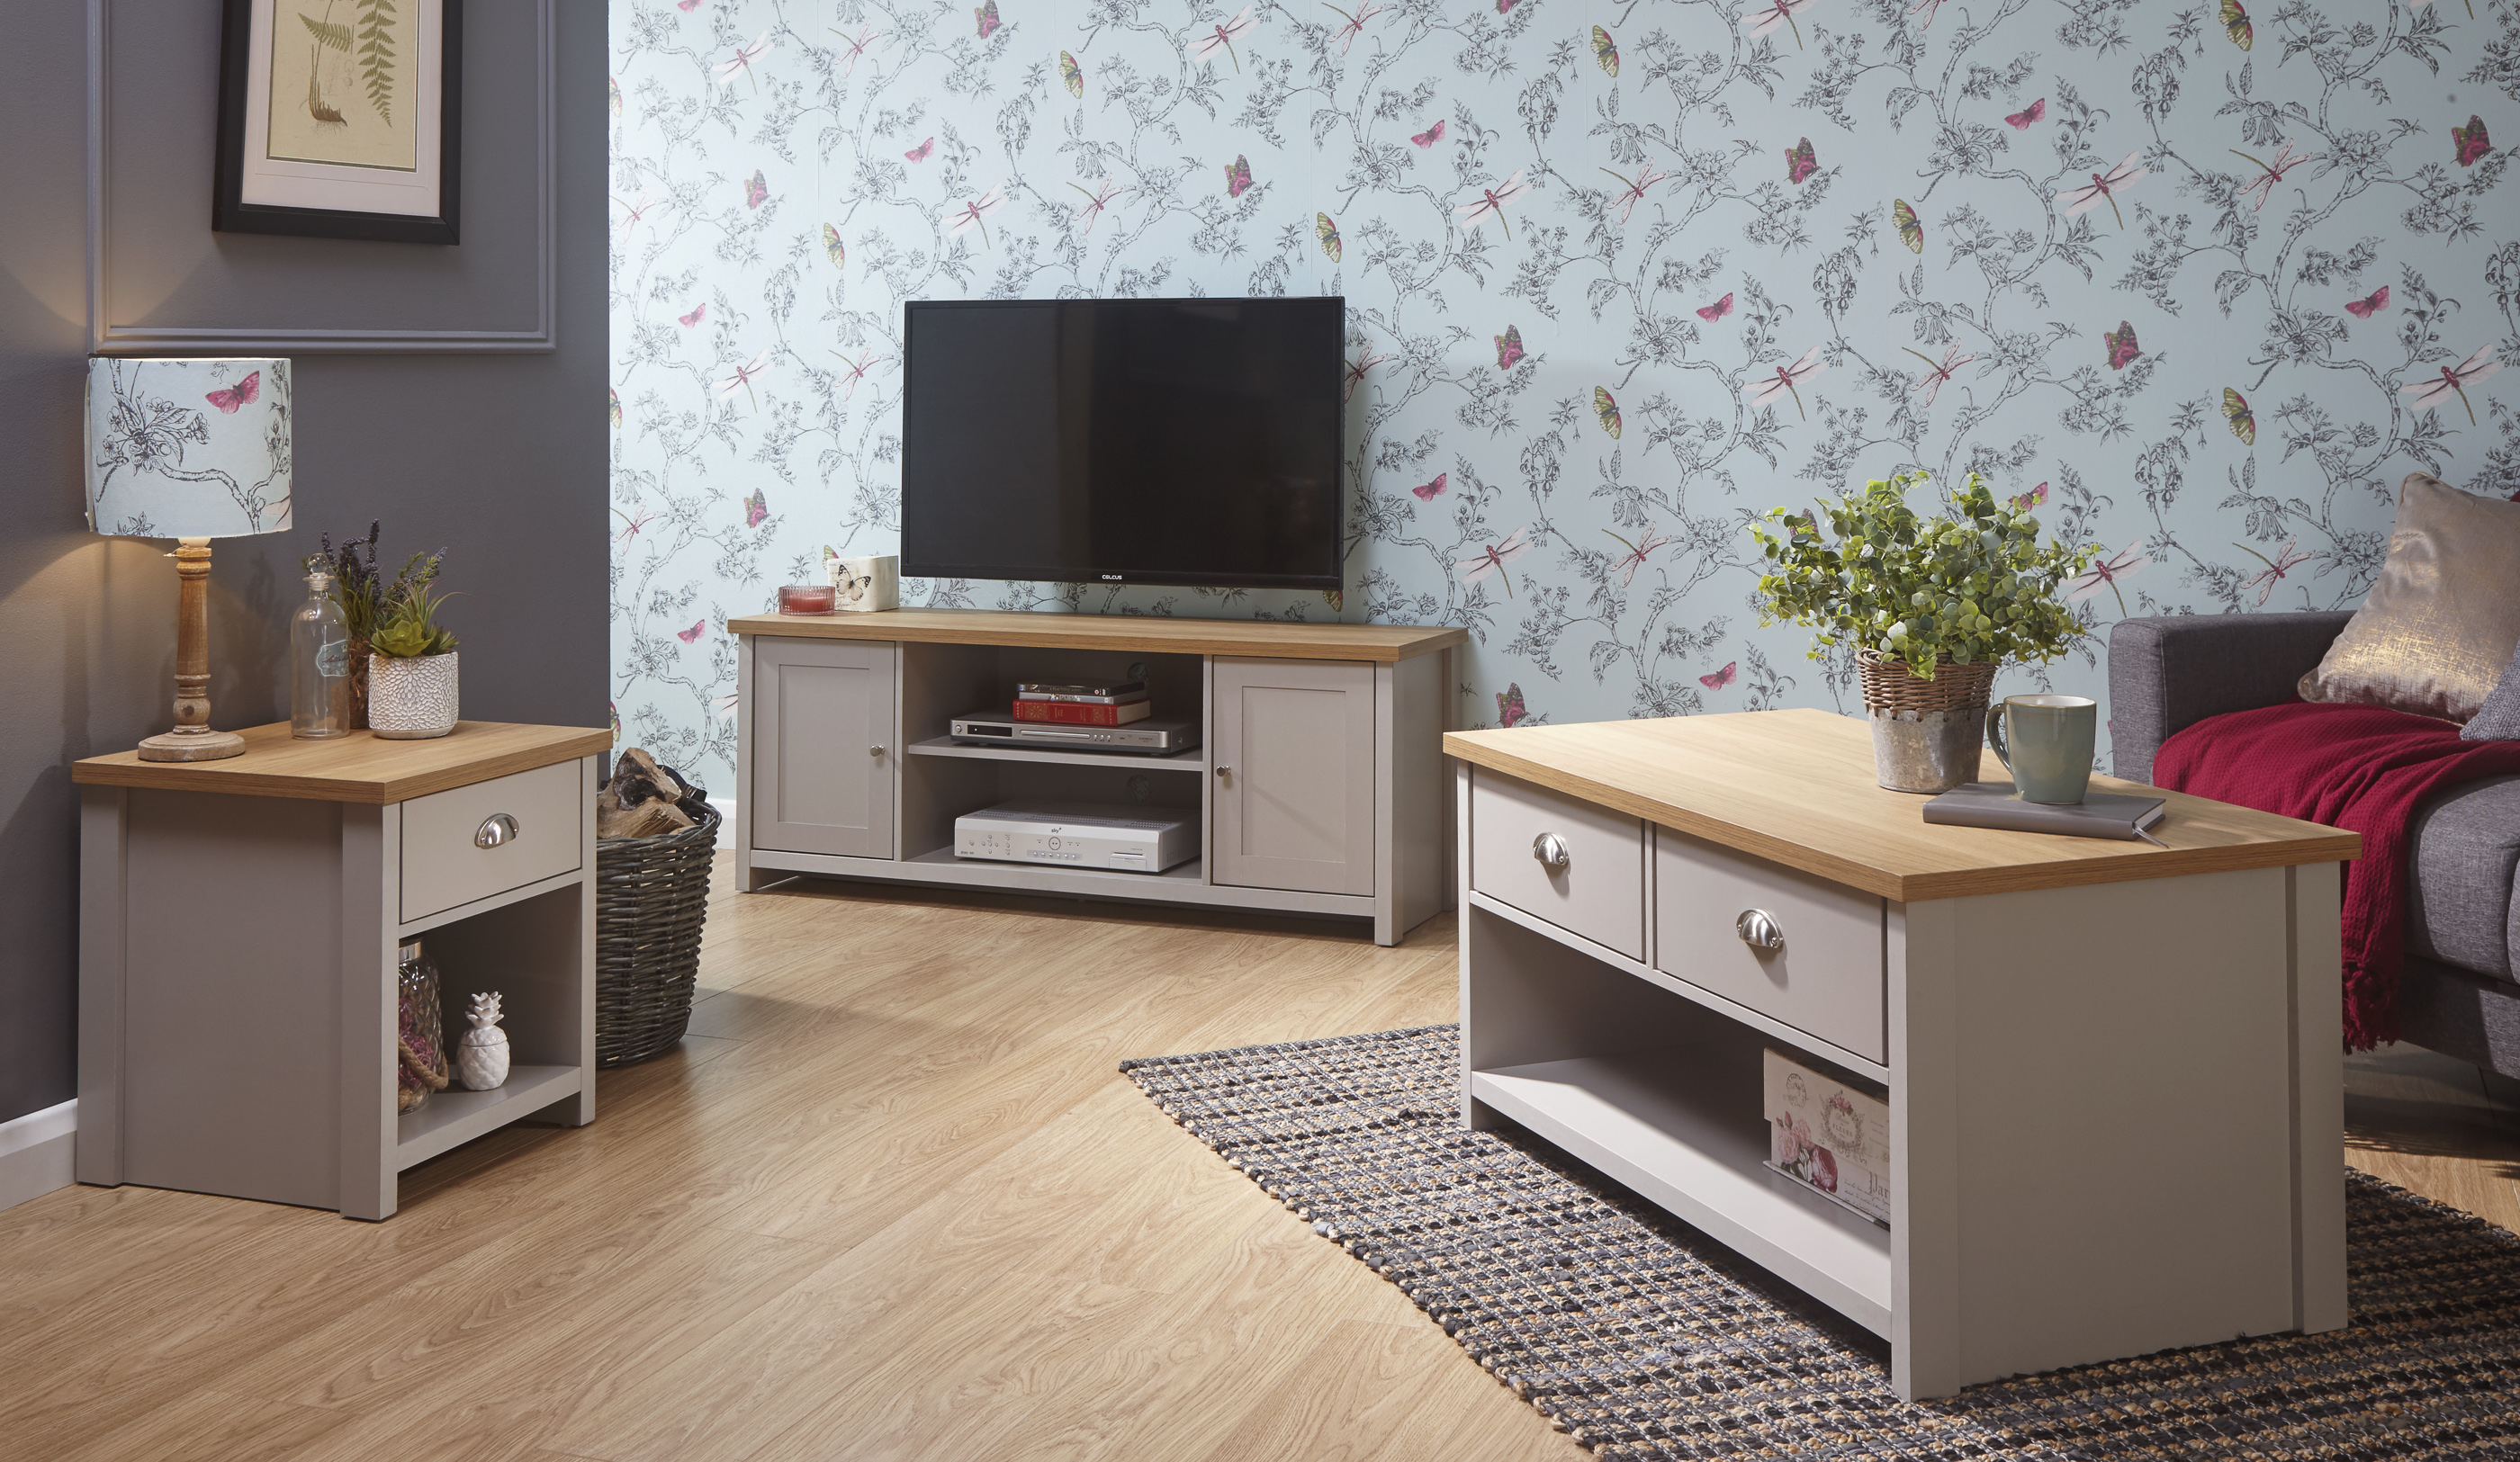 Lancaster Living Room Range Tables Sideboard Tv Cabinets Cream Grey Oak The Consists Of Items To Complete Look Your Home